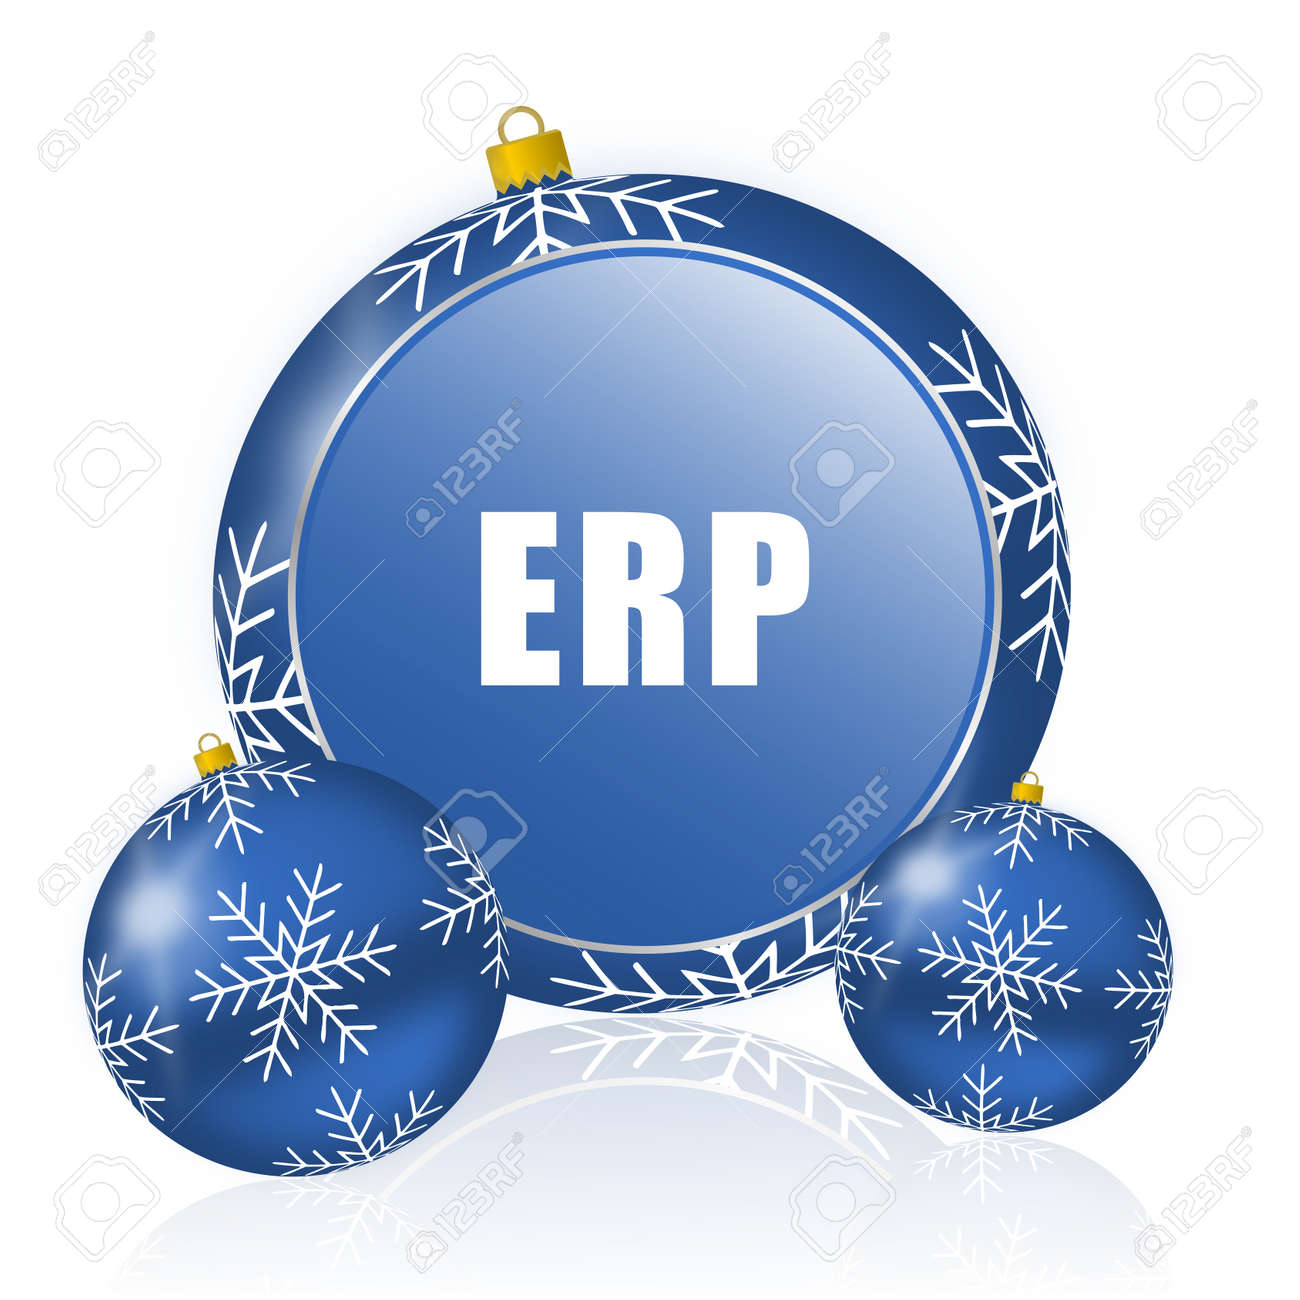 Erp Blue Christmas Balls Icon Stock Photo Picture And Royalty Free